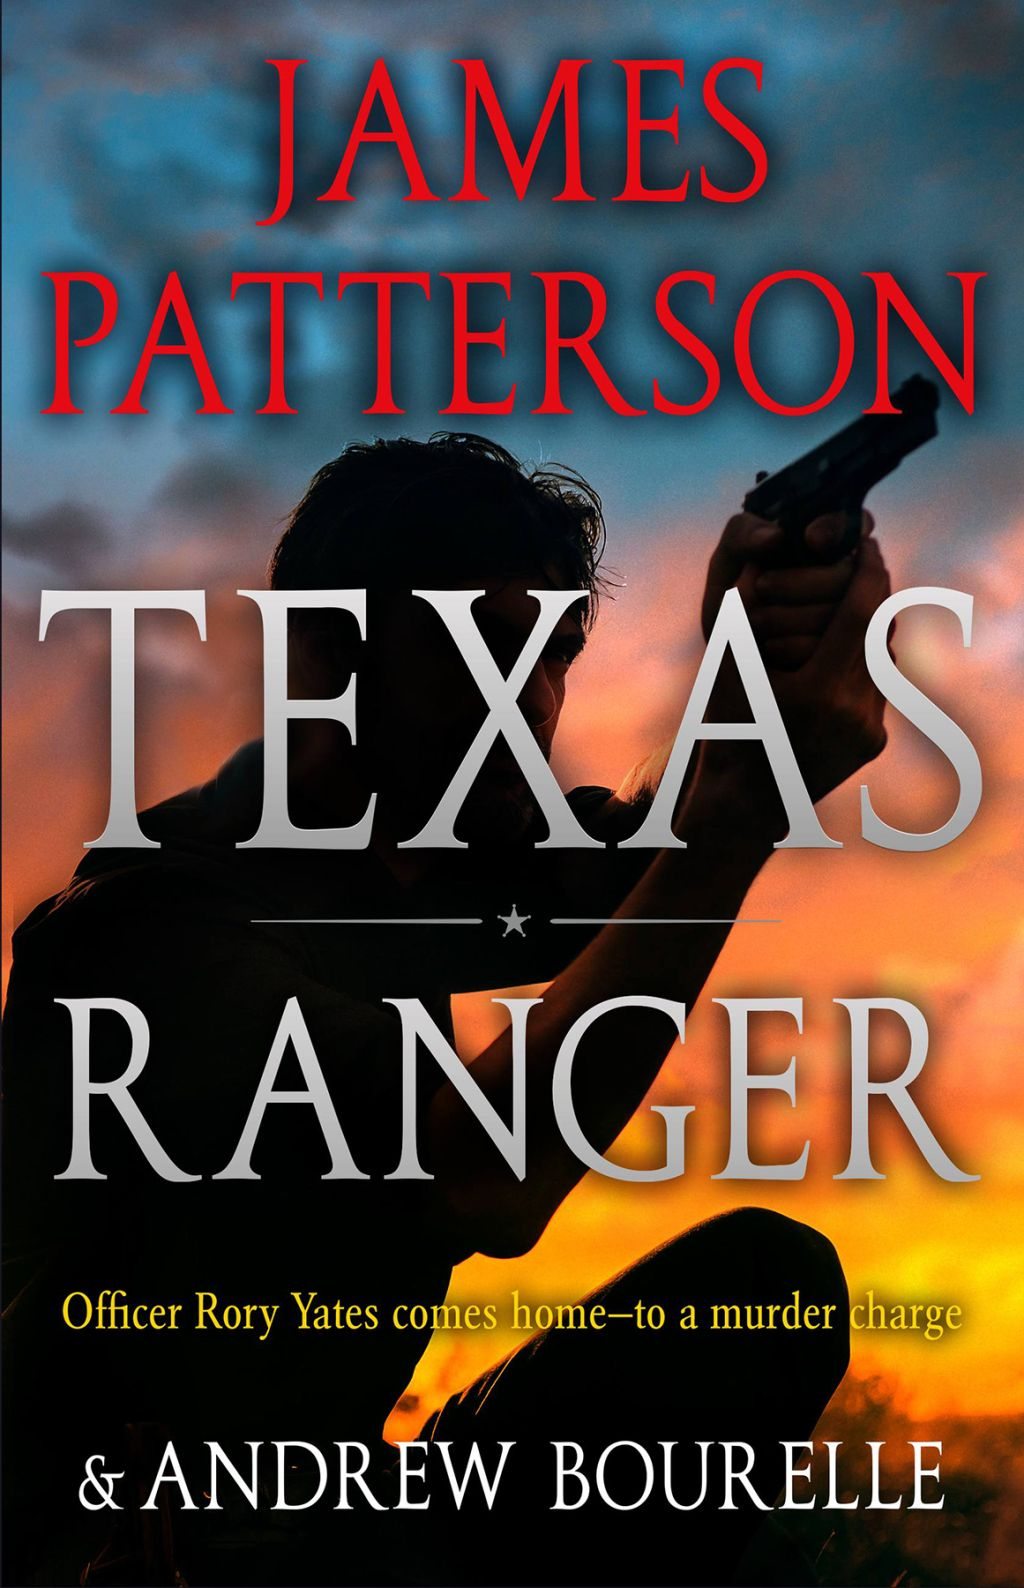 Texas Ranger Ebook James Patterson James Patterson Books